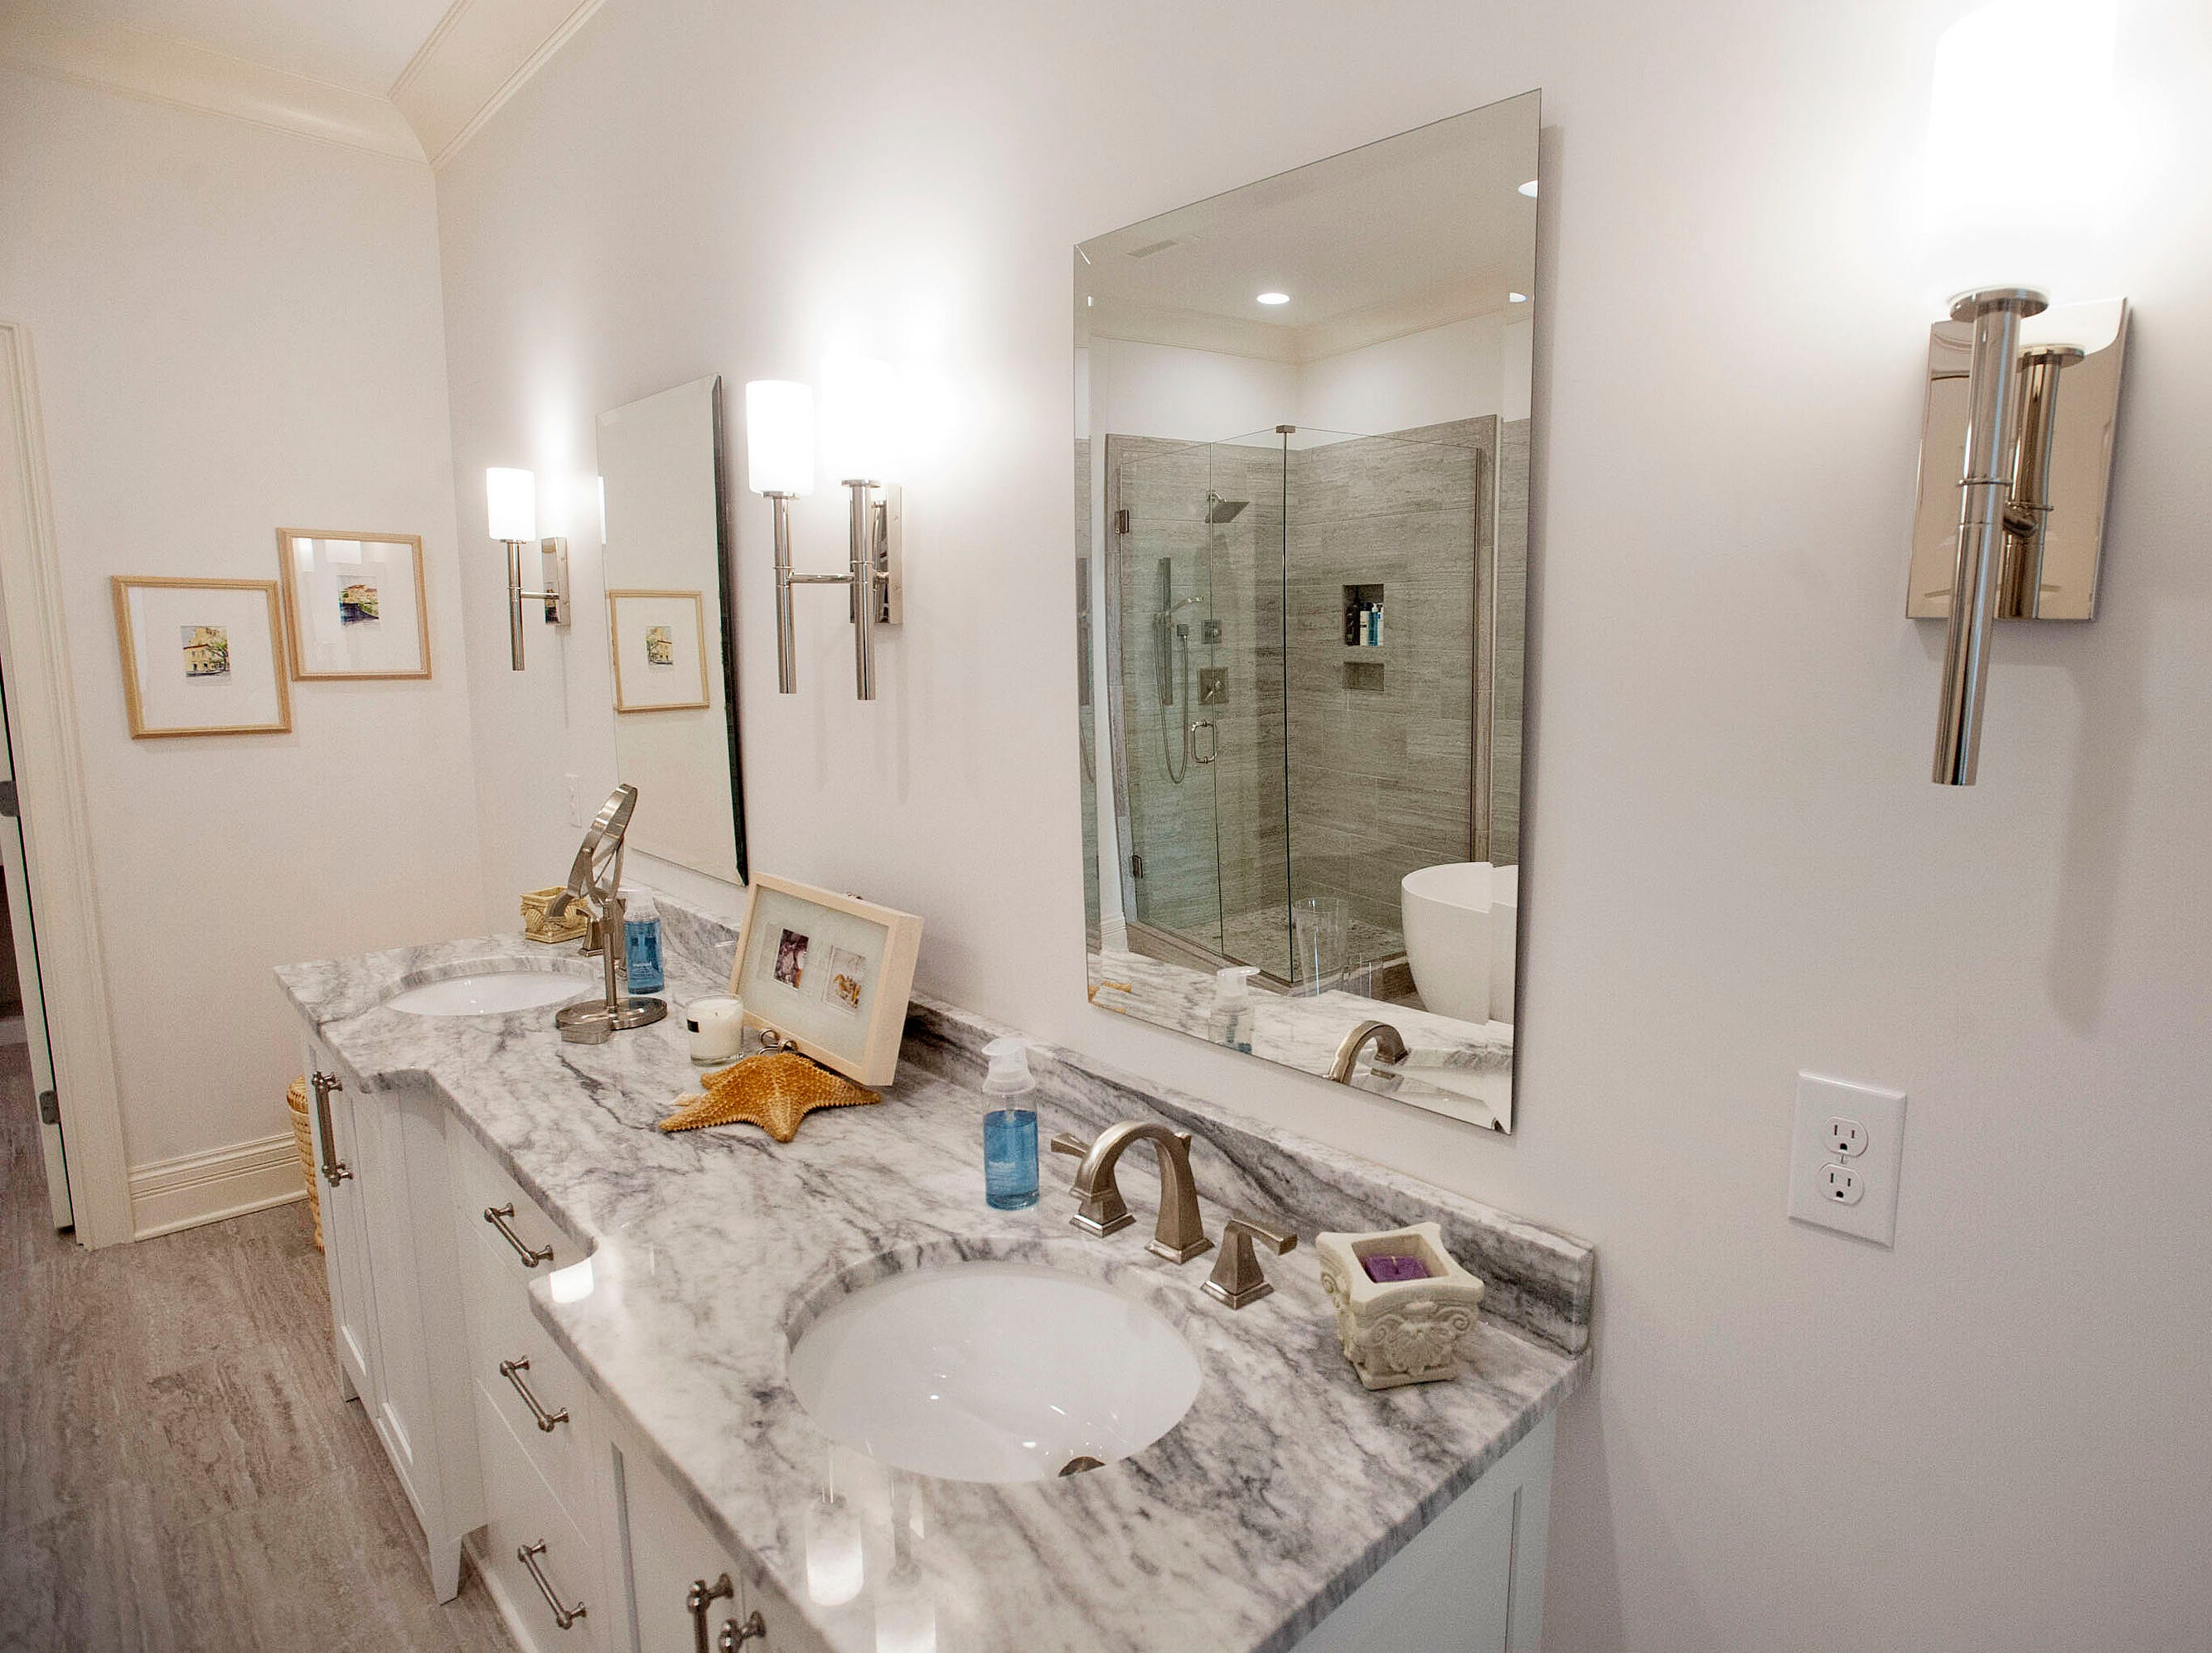 The master bathroom of Denise Puthuff's condominium.